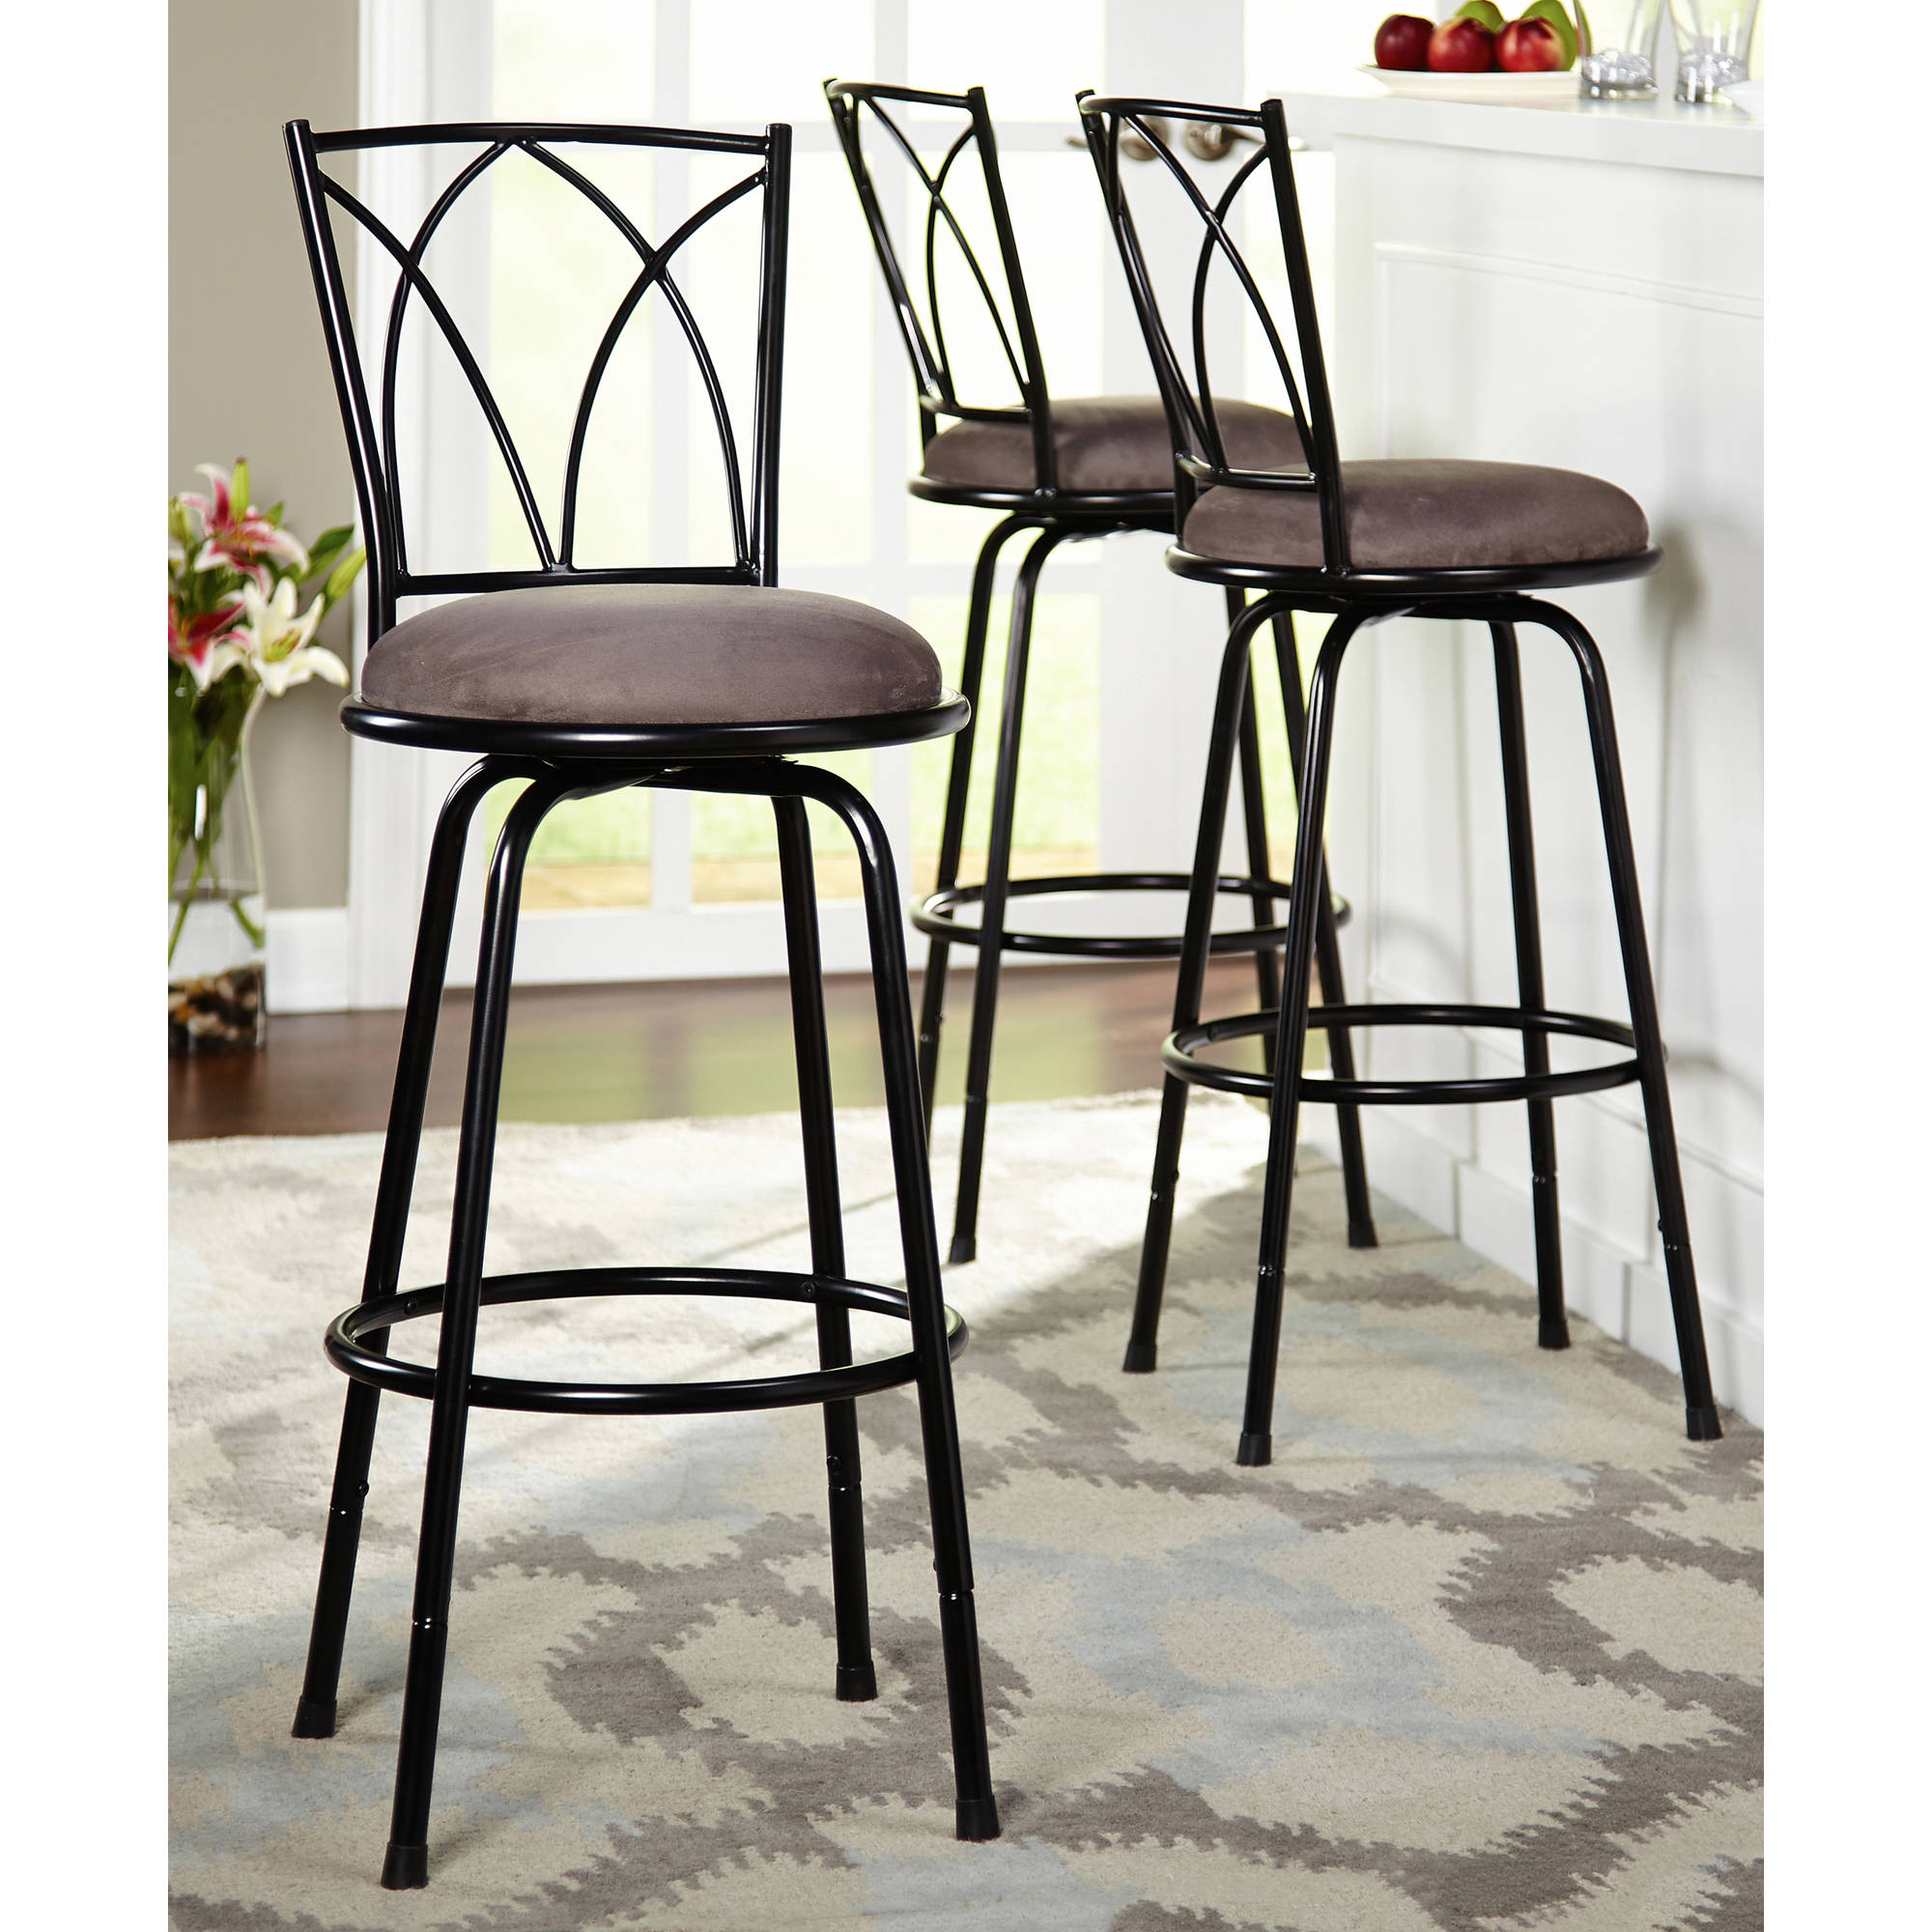 Delta adjustable metal barstools 3 piece set black walmart watchthetrailerfo